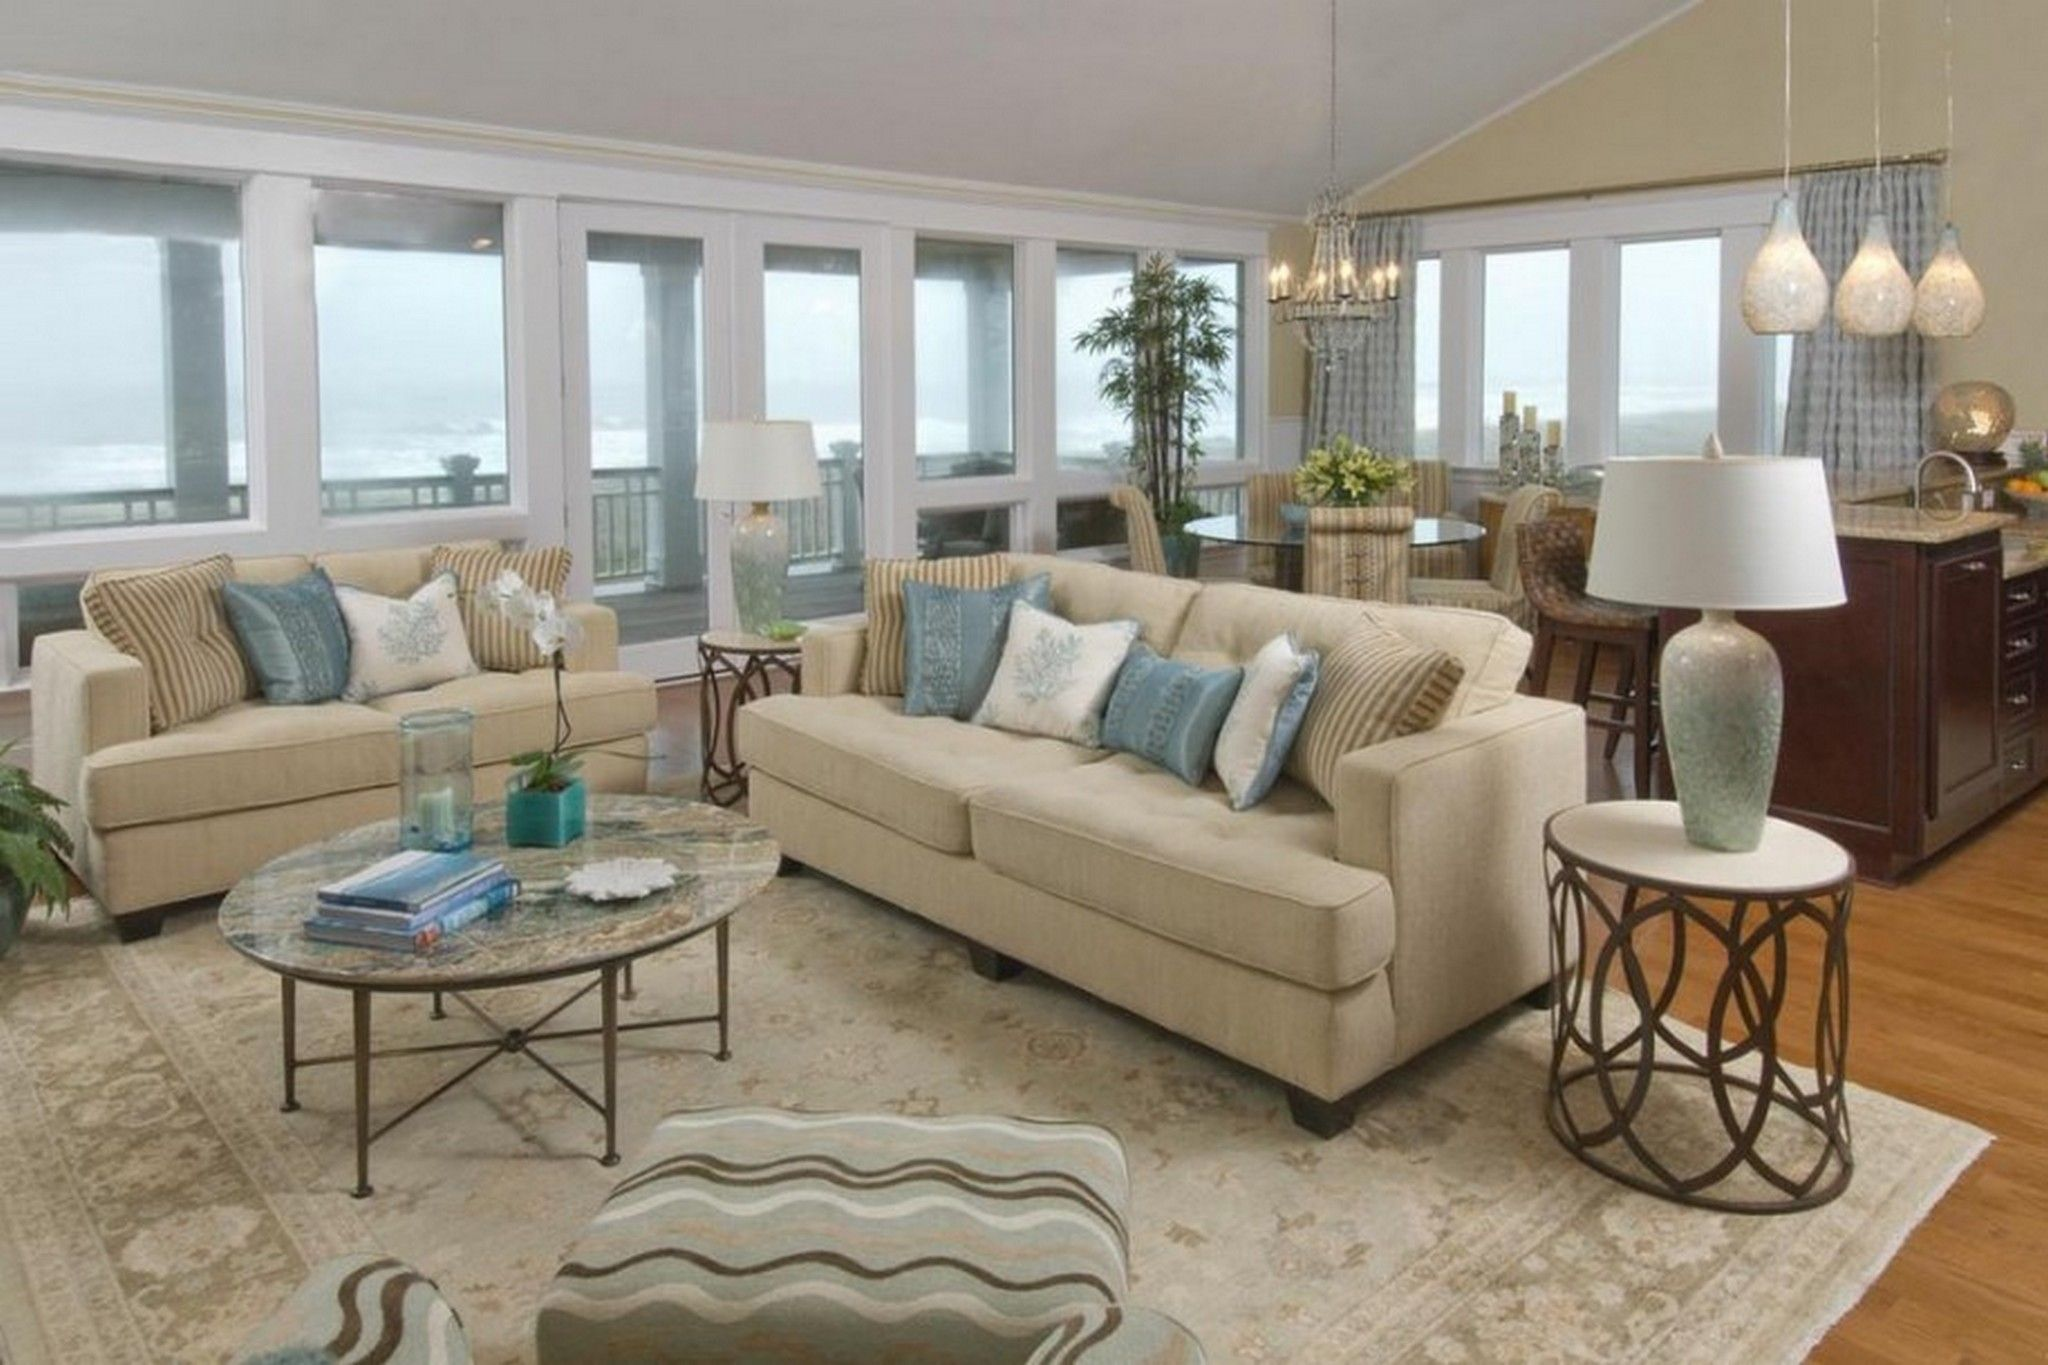 Beach Themed Living Room Design Endearing Beach Decor For The Living Room  Beach House Interiors Inspiration